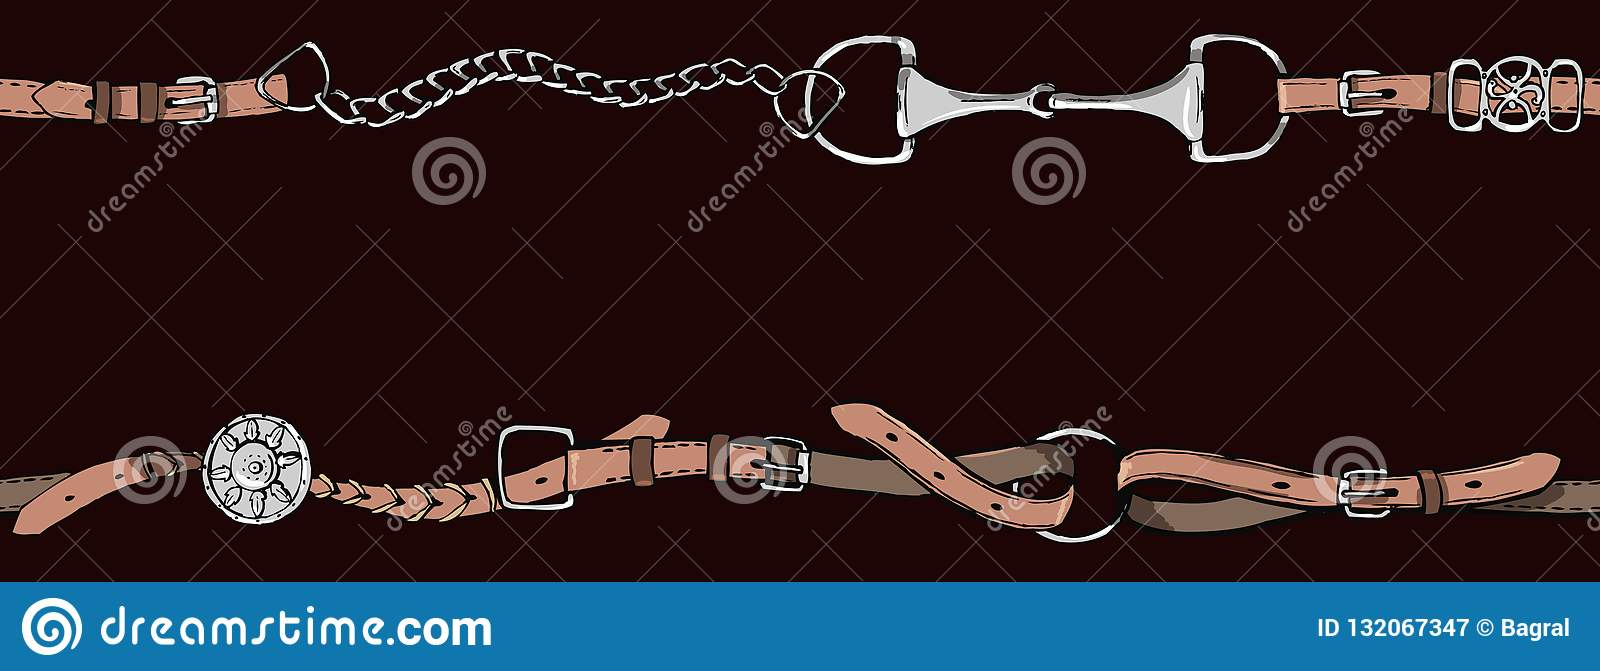 Belt Border Or Frame With Bit Leather Horse Riding Tack Tool On Black Stock Illustration Illustration Of Fashion Derby 132067347